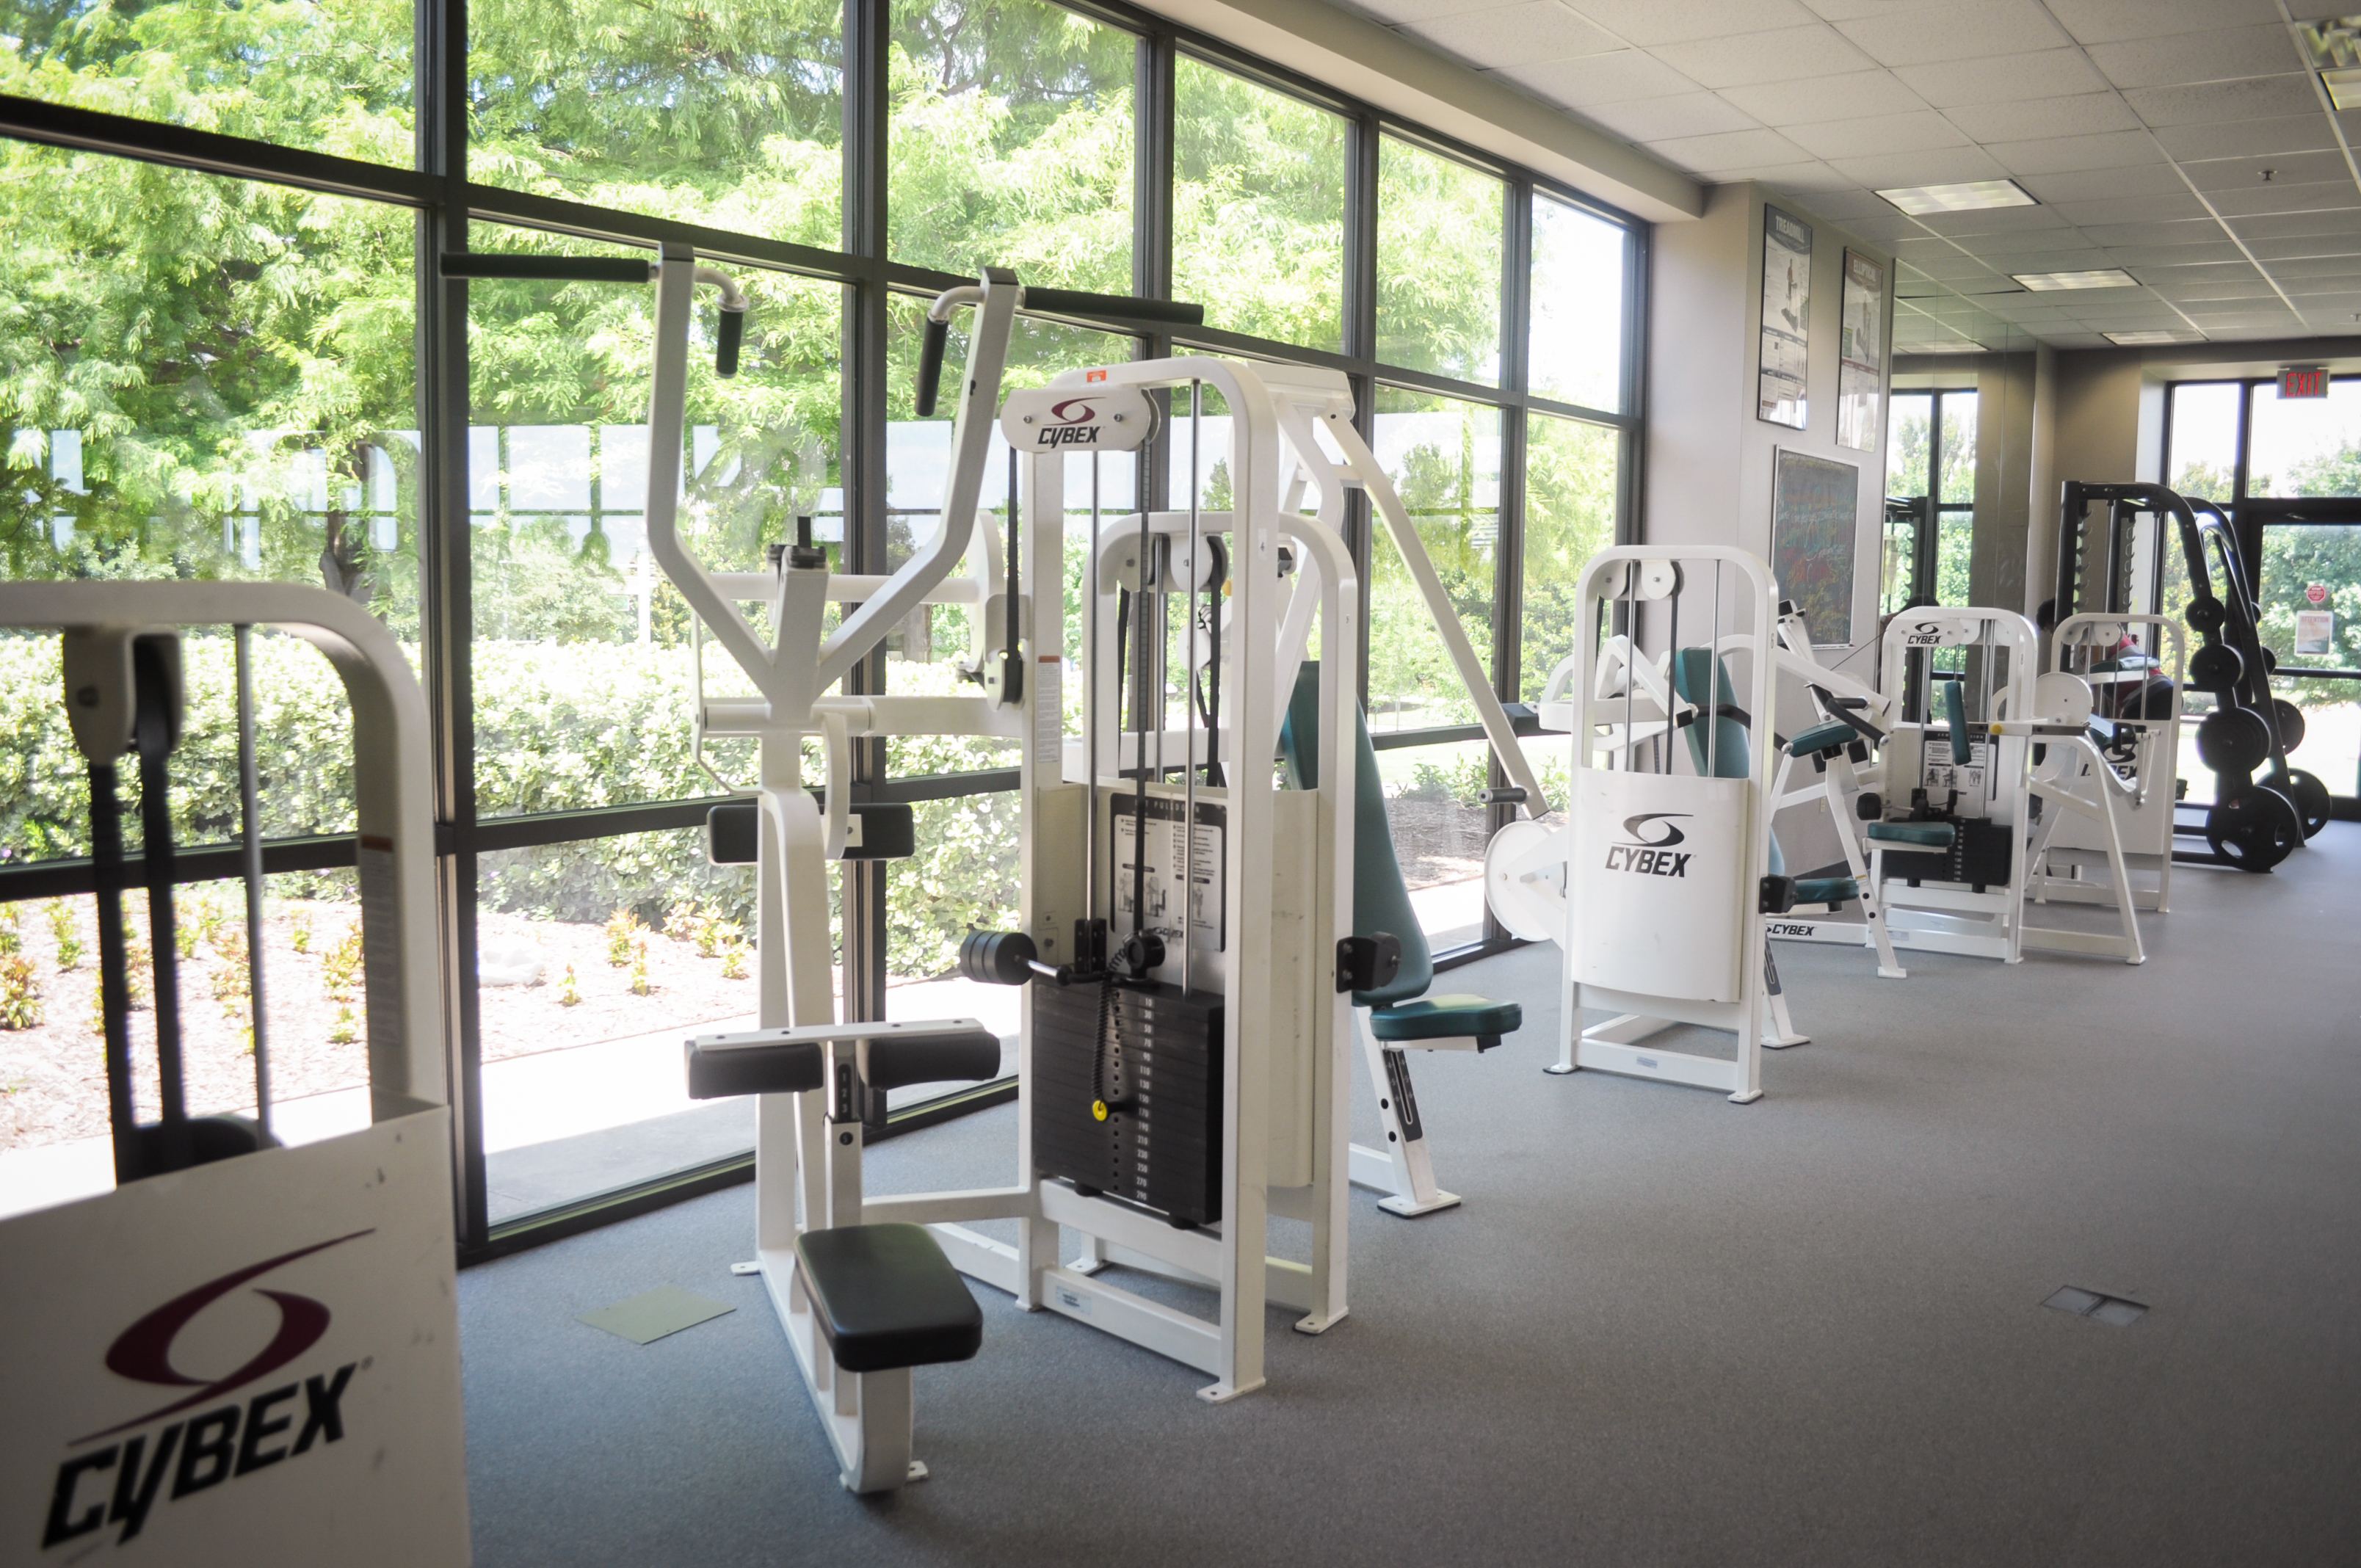 Fitness Center reopens after weeks-long closure